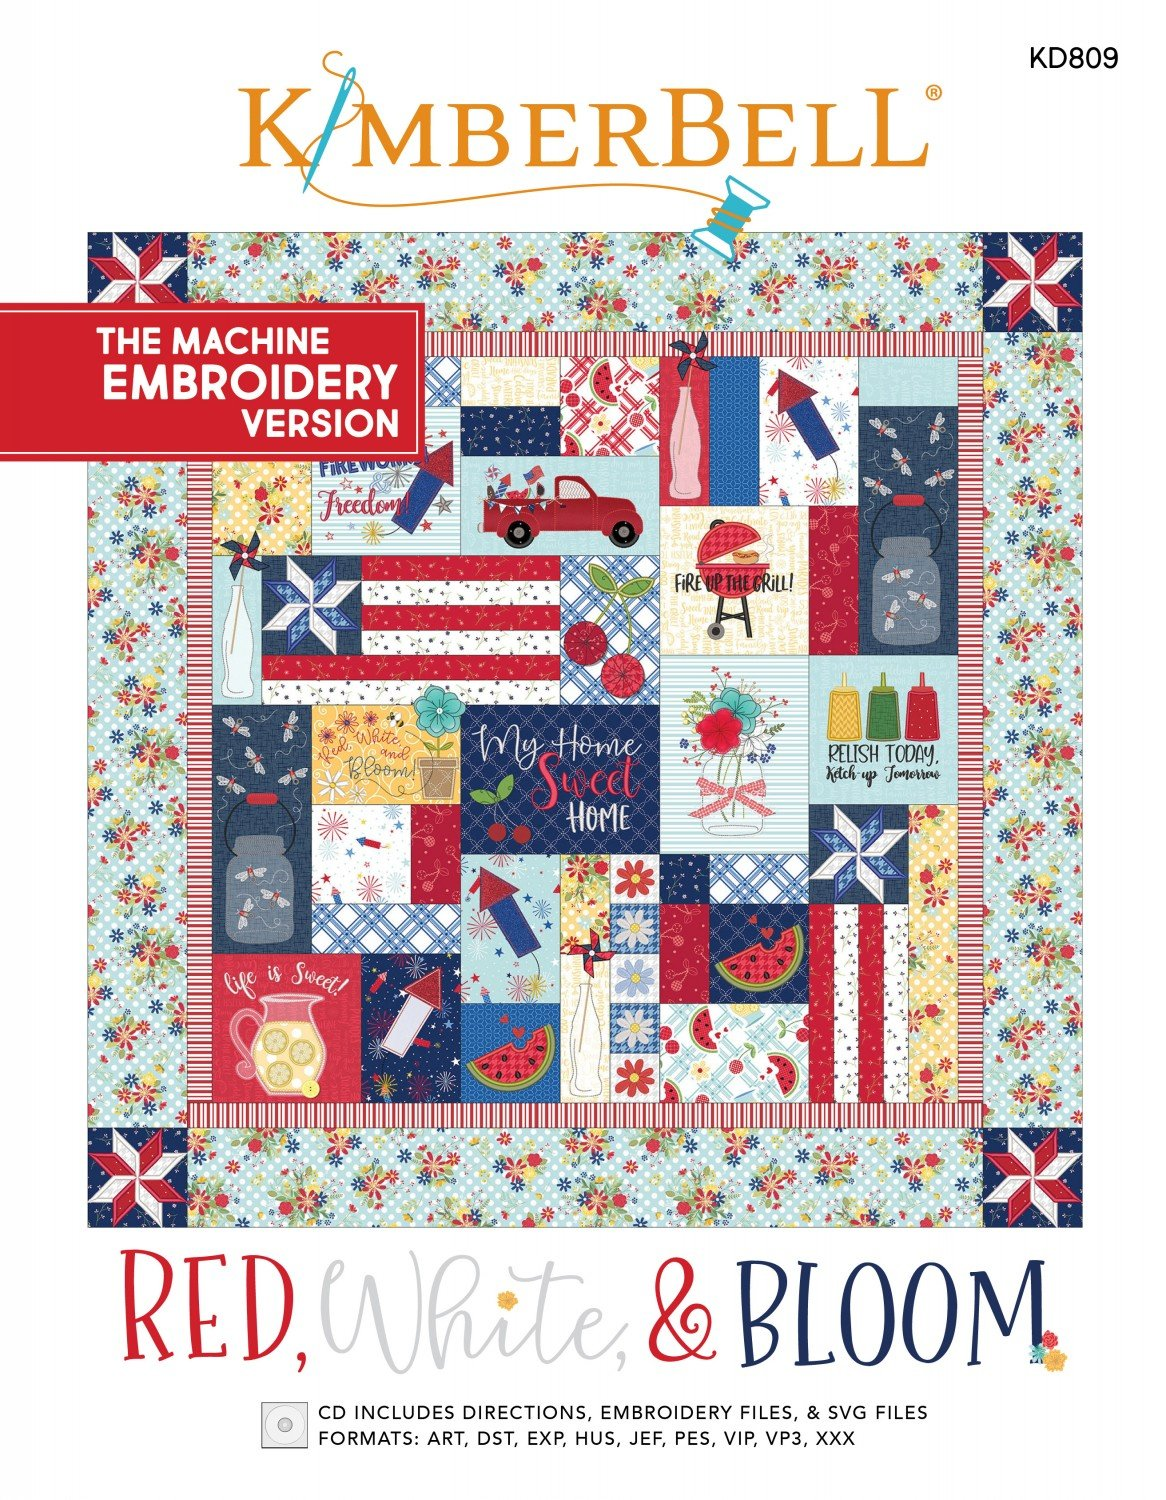 Red, White, & Bloom Machine Embroidery Patterns CD